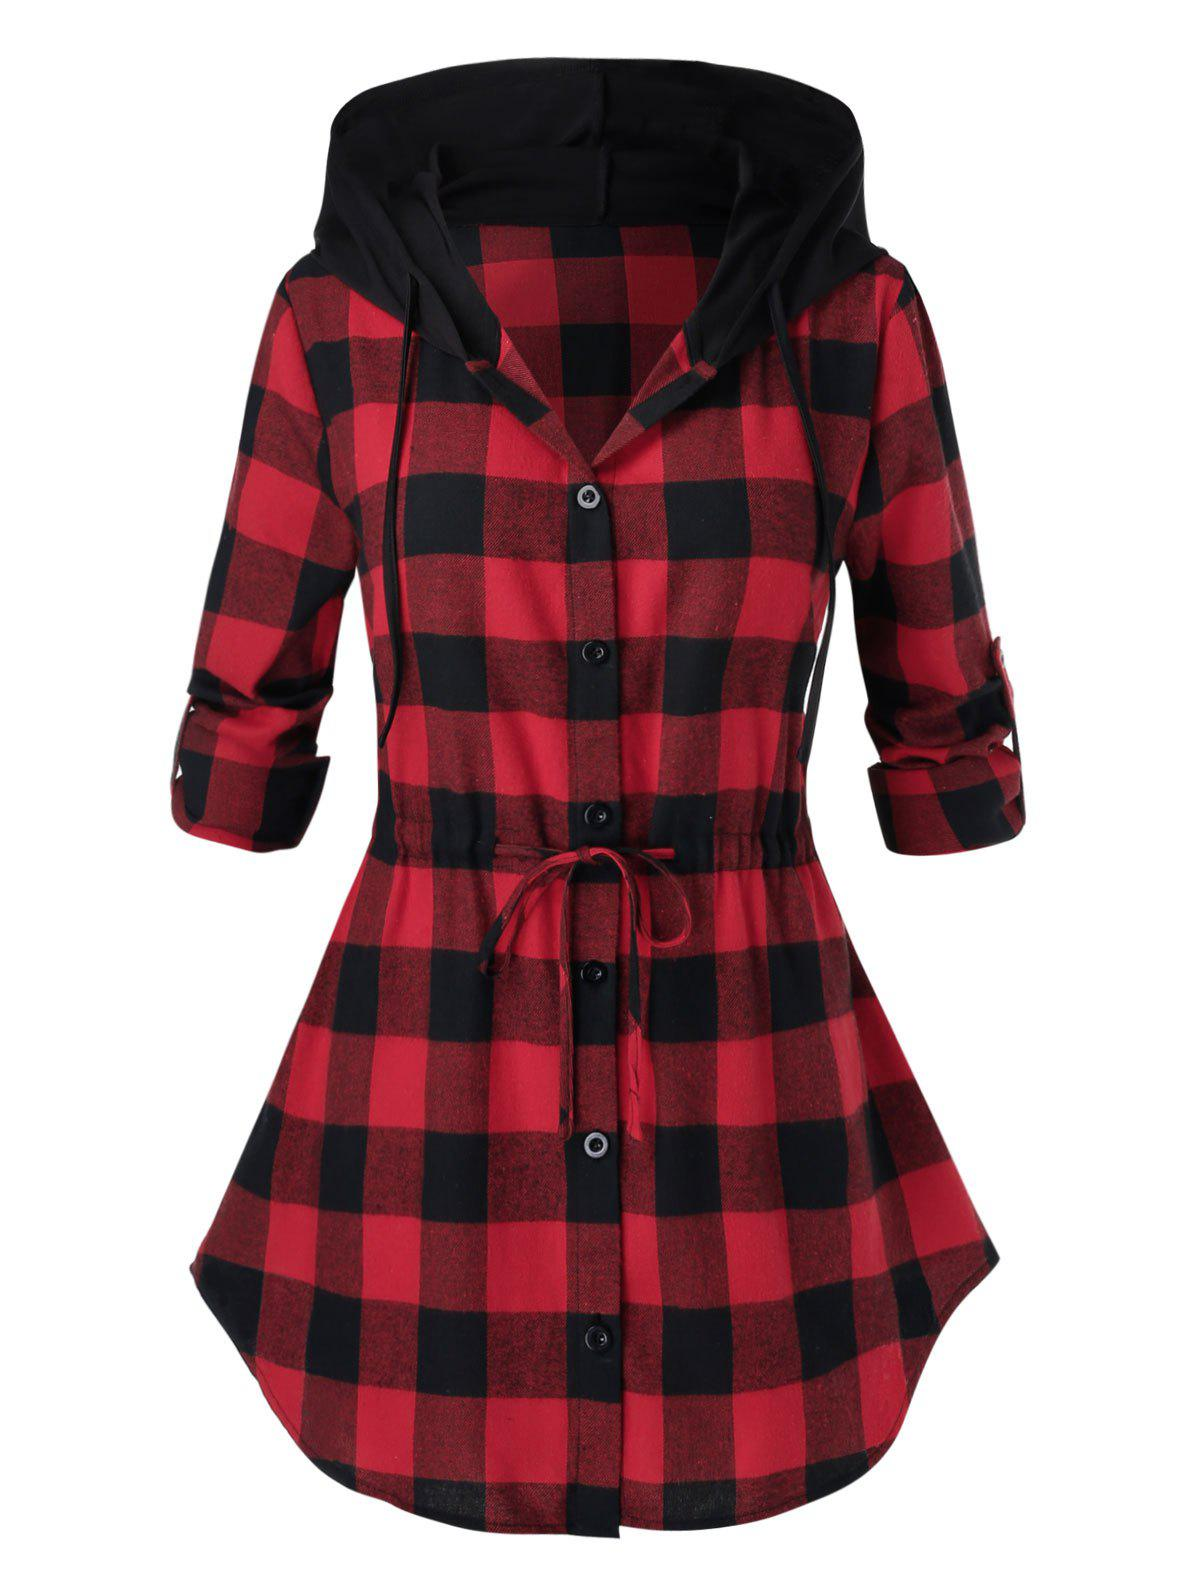 Plus Size Hooded Drawstring Plaid Curved Blouse - CHERRY RED 2X